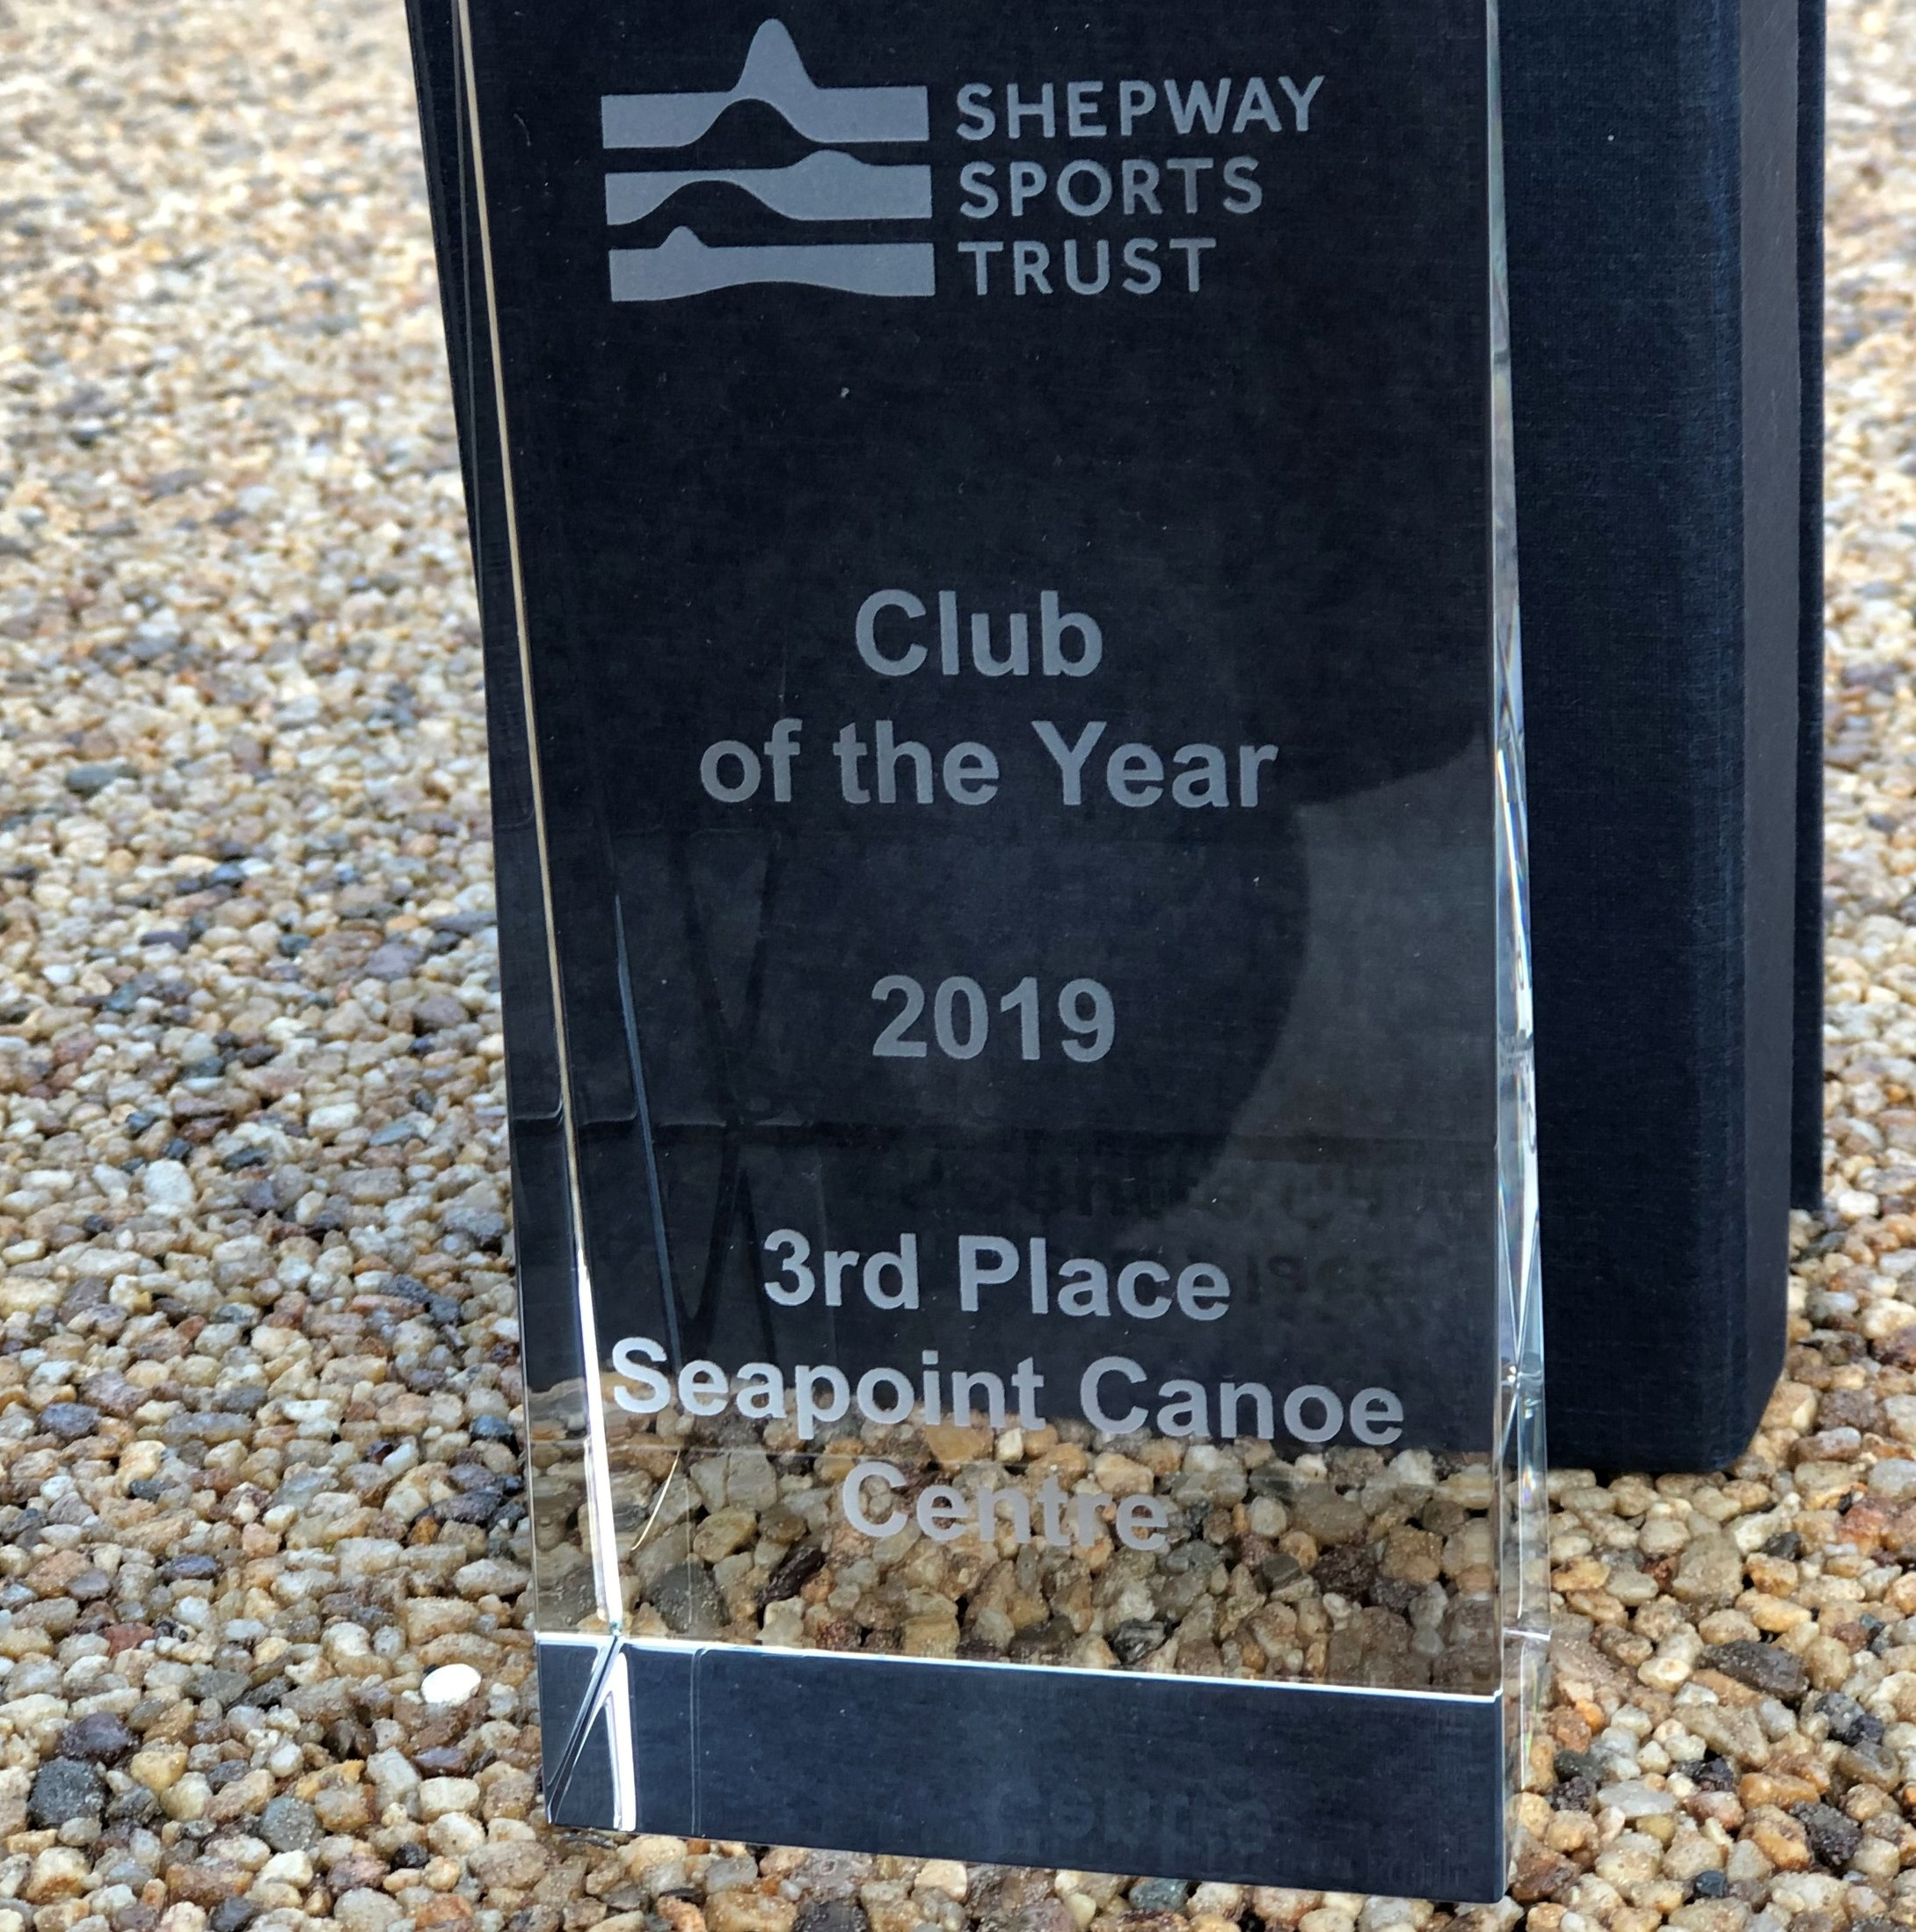 CLUB OF THE YEAR,3RD PLACE - In July 2019 Seapoint Canoe Centre, and all who volunteer and work at the centre, is proud to have received an award at the Shepway Sports Trust Awards night.